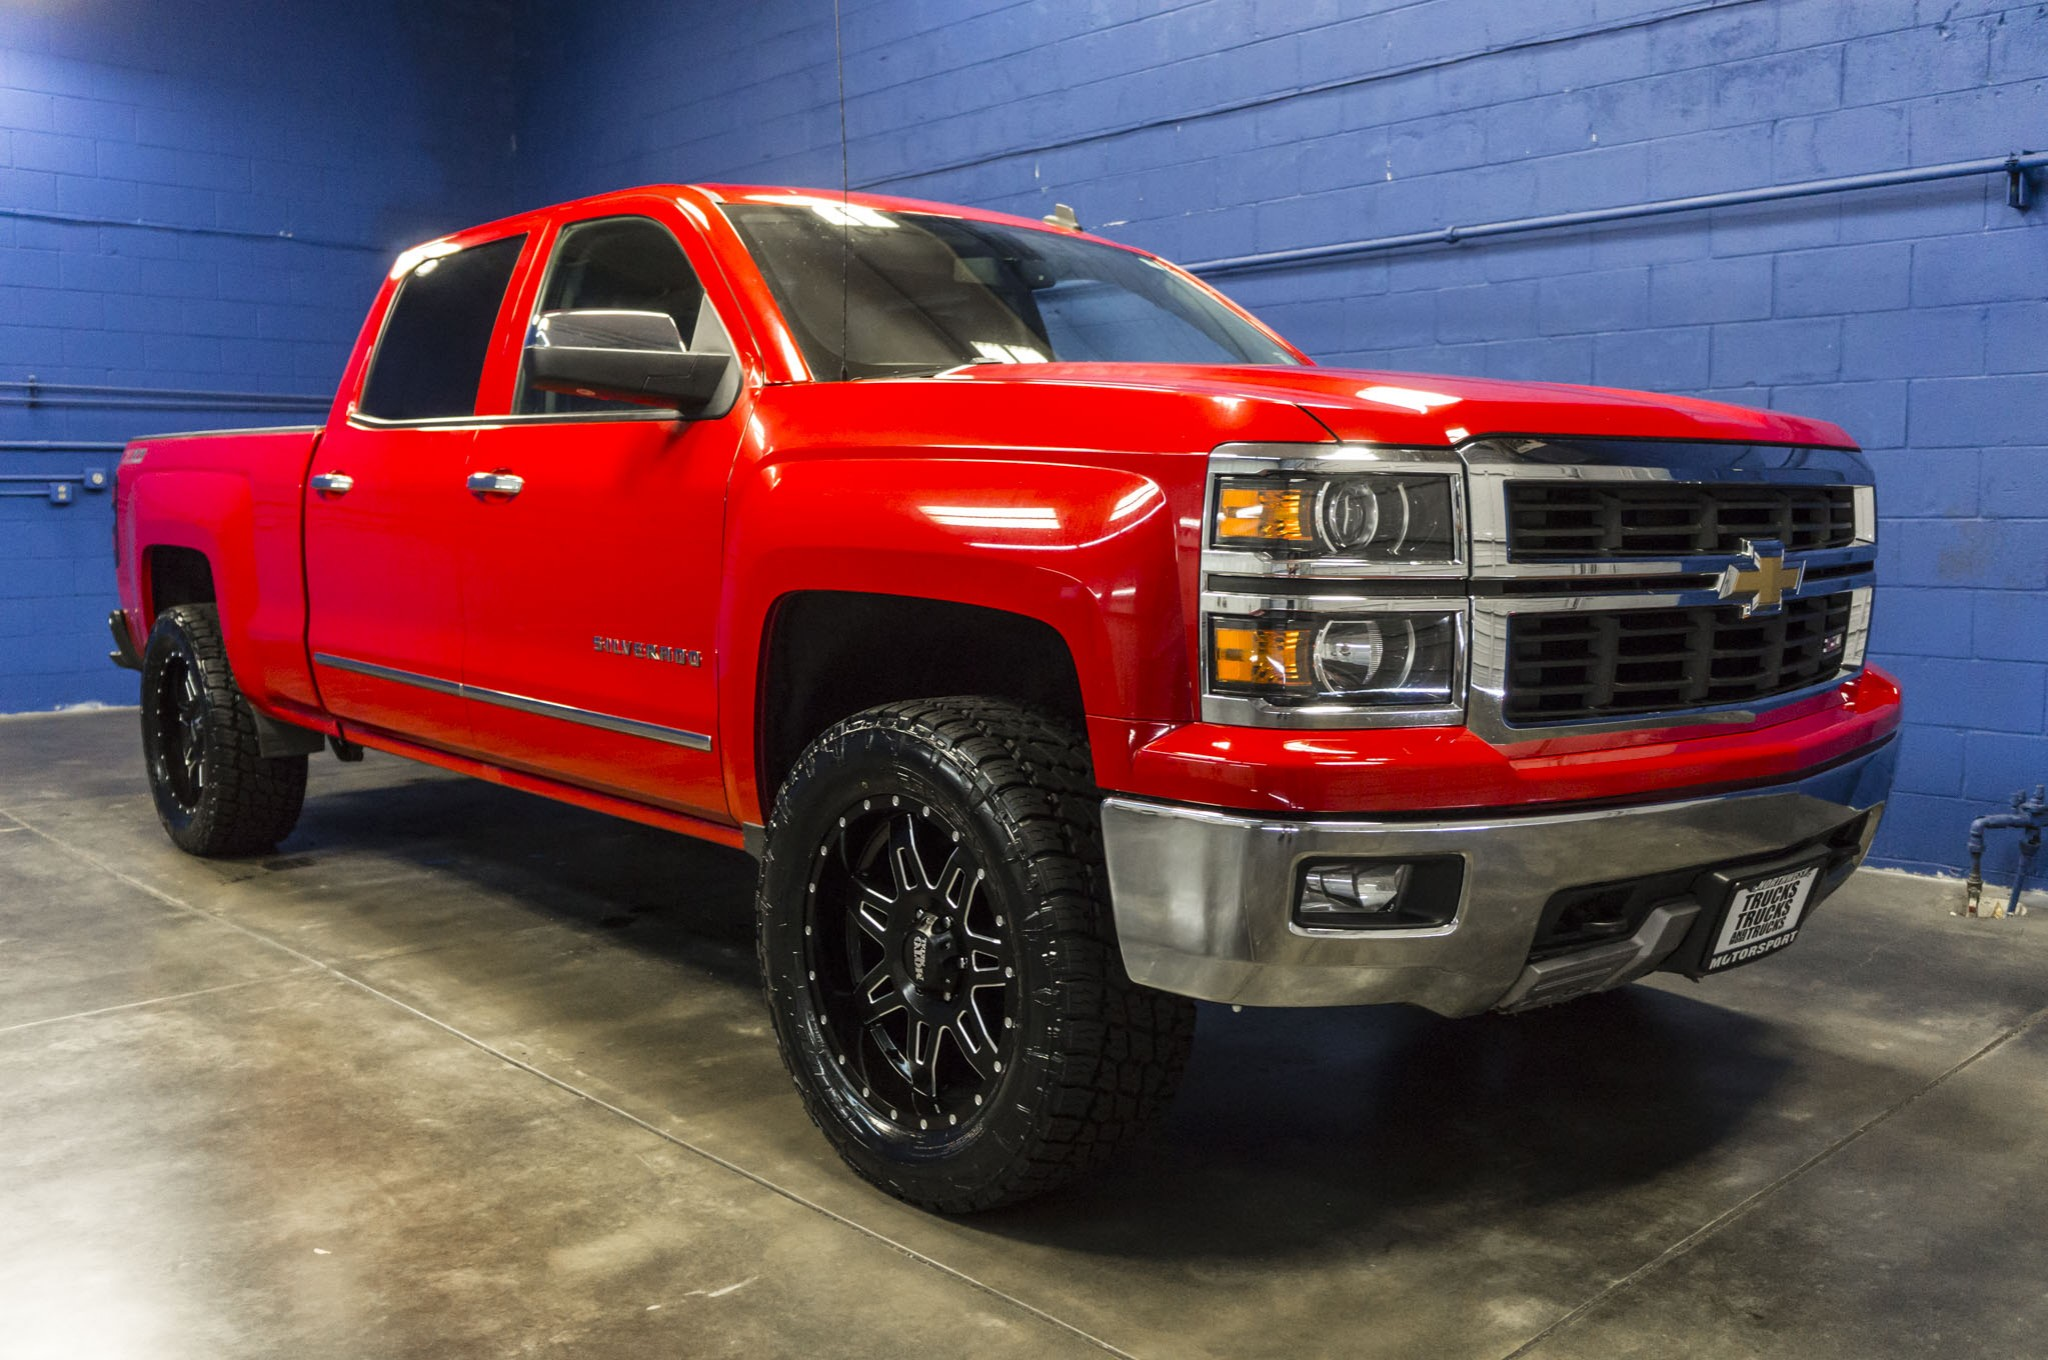 used lifted 2014 chevrolet silverado 1500 ltz 4x4 truck for sale 33594. Black Bedroom Furniture Sets. Home Design Ideas